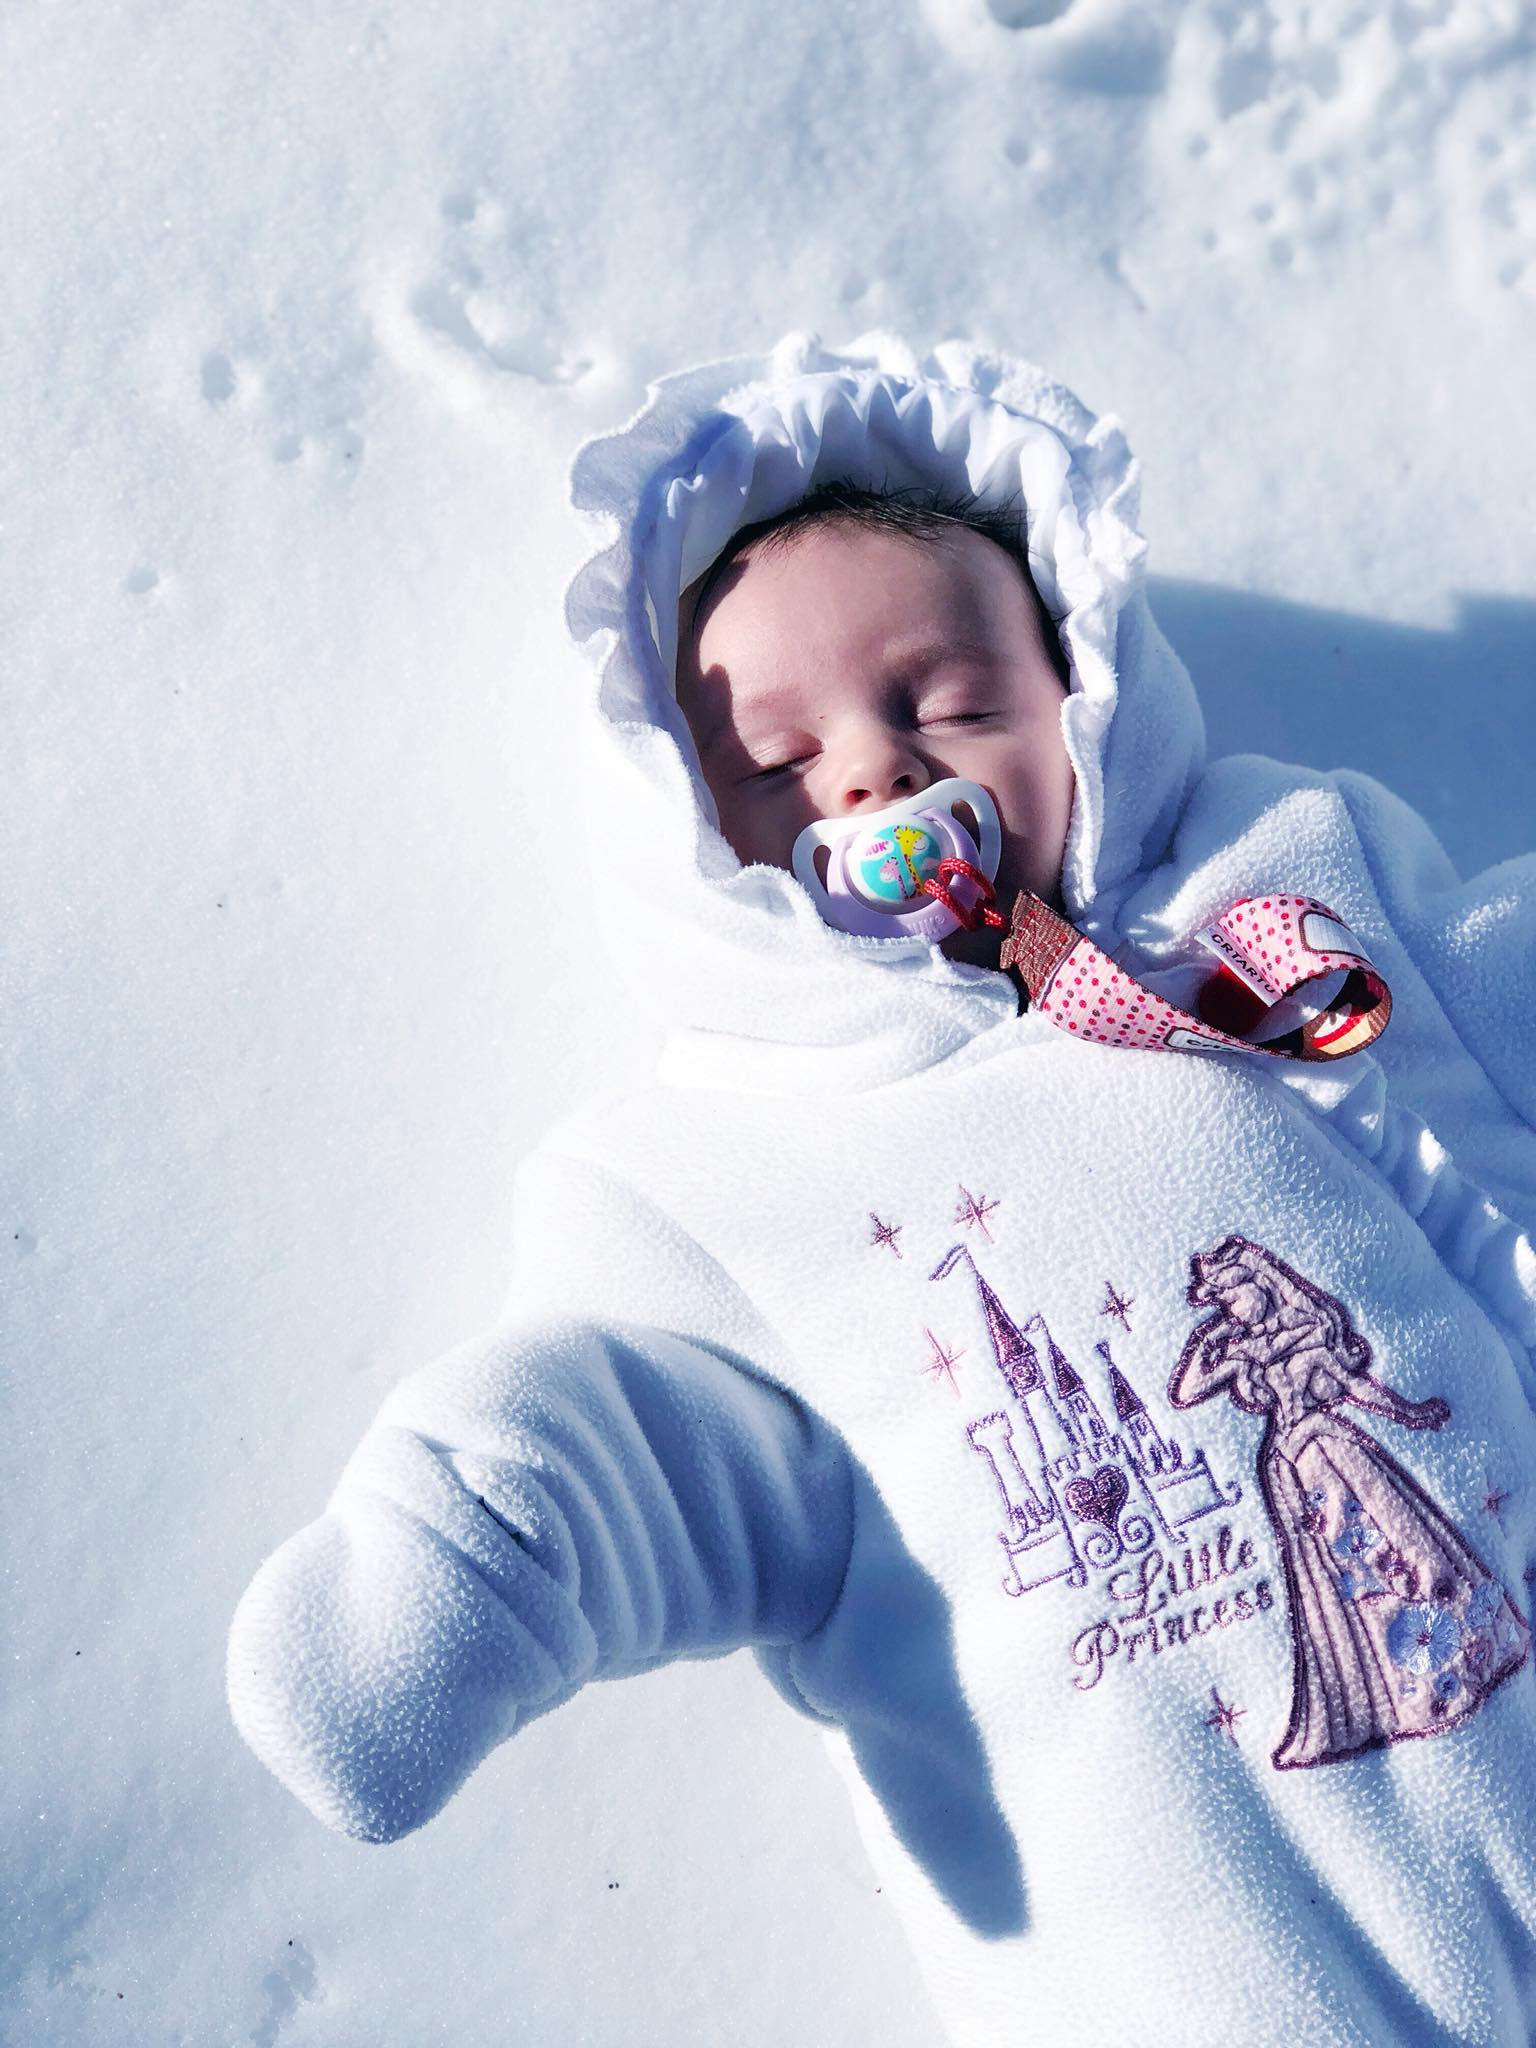 Baby girl laying in the snow wearing a white snowsuit with Sleeping Beauty on it